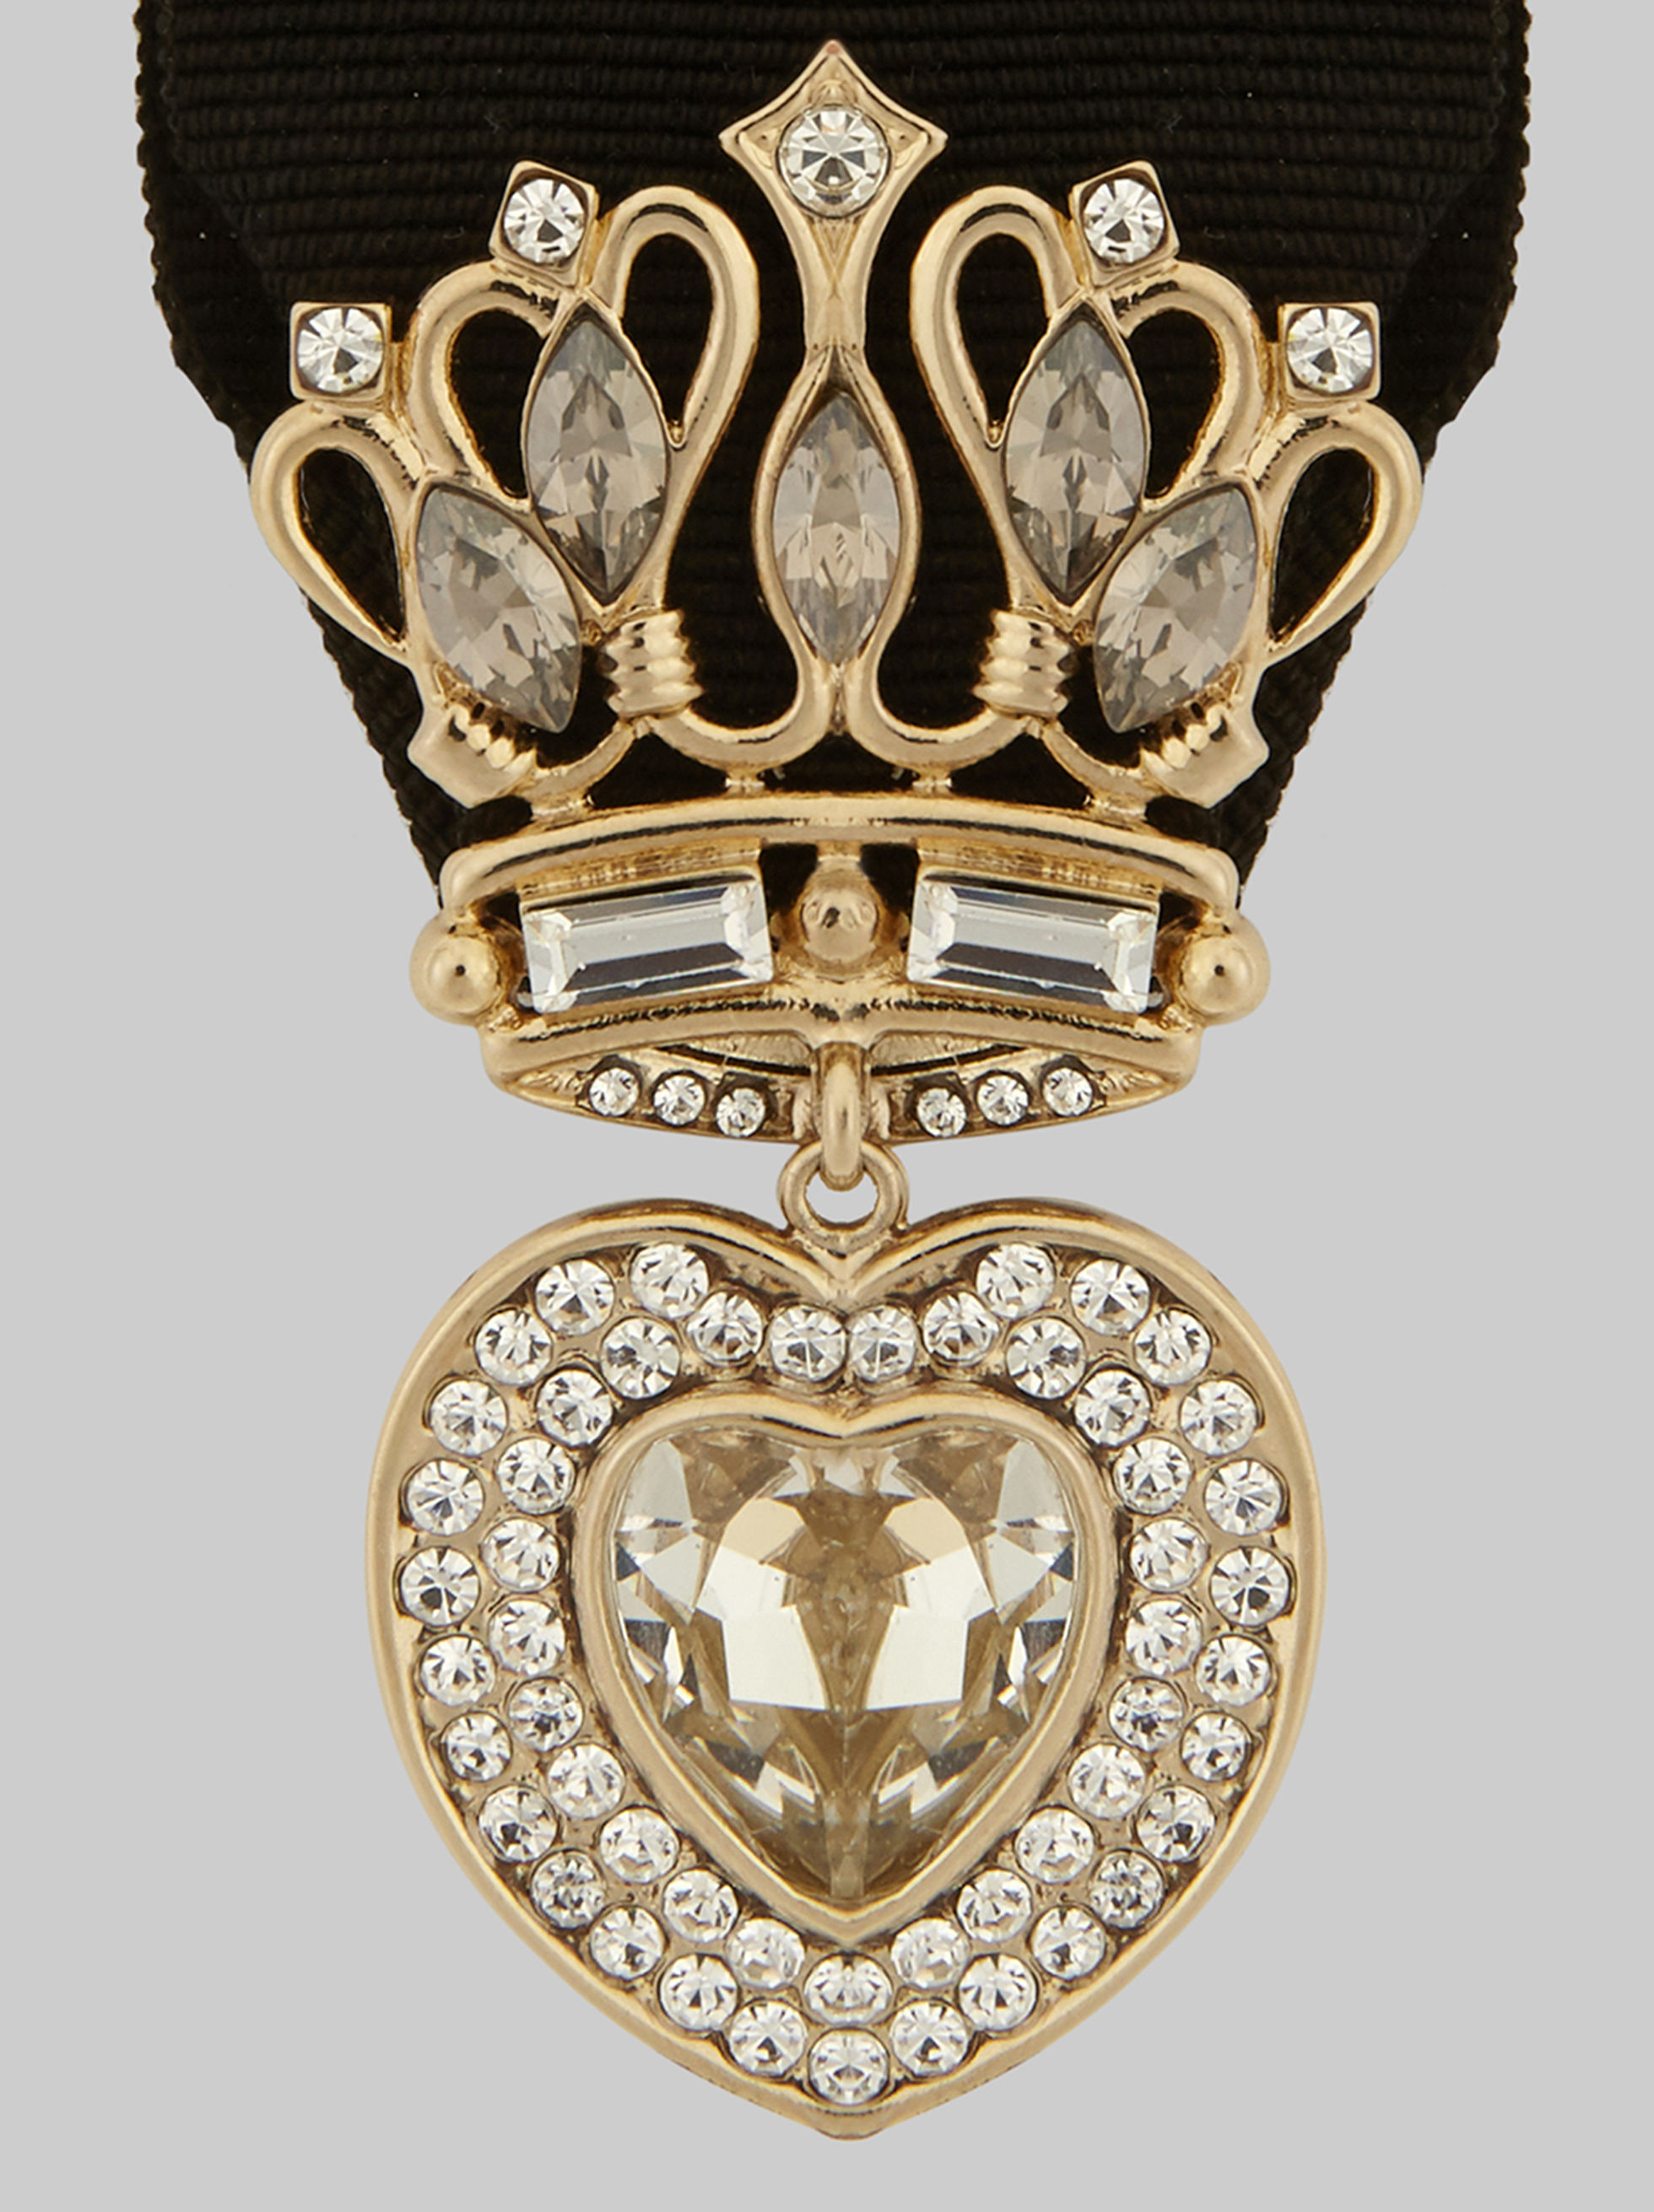 BROOCH WITH CROWN